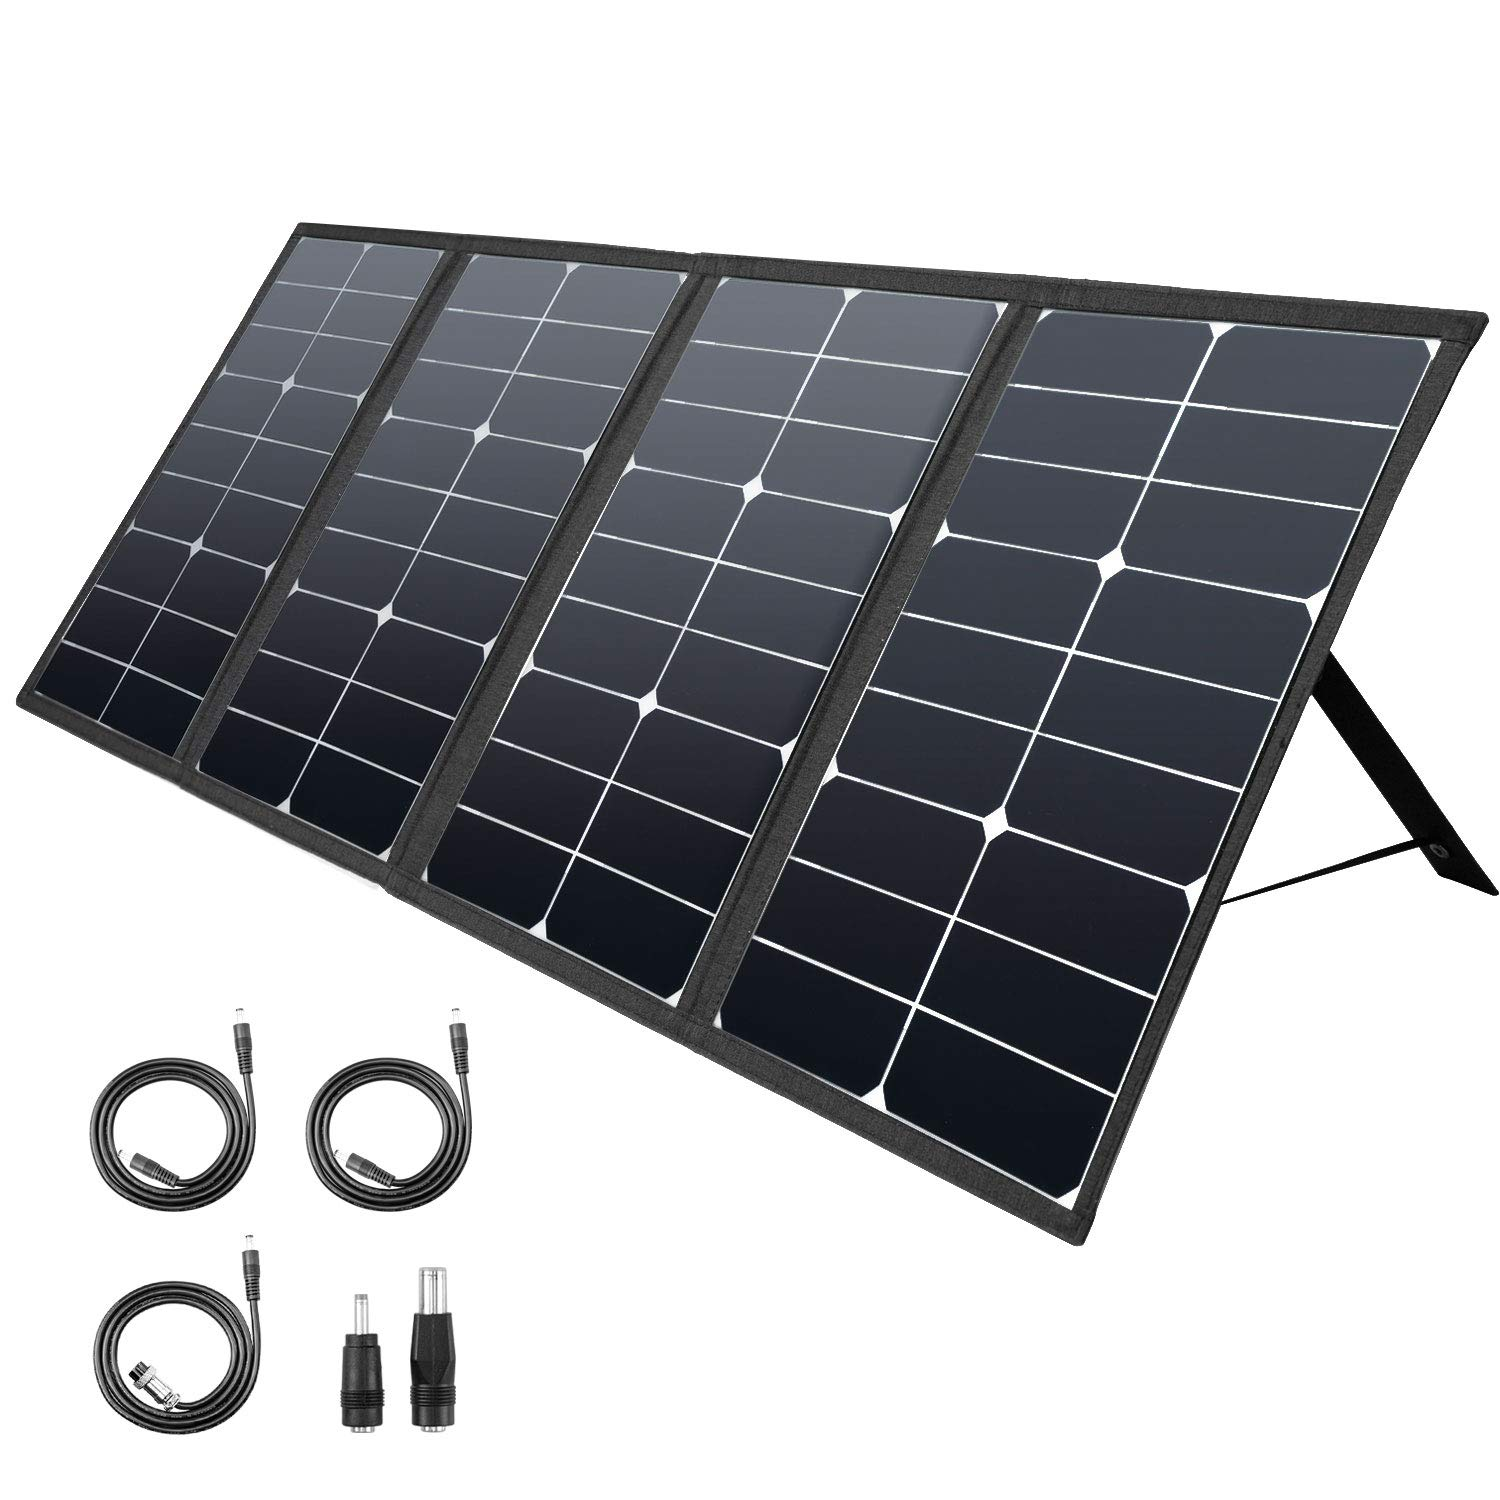 ROCKPALS 80W Portable Solar Panel Charger, Parallel Foldable Solar Panel for ROCKPALS 250W/300W Portable Power Station, 8mm for Goal Zero Yeti Power Station/Jackery Explorer 160/240 by ROCKPALS